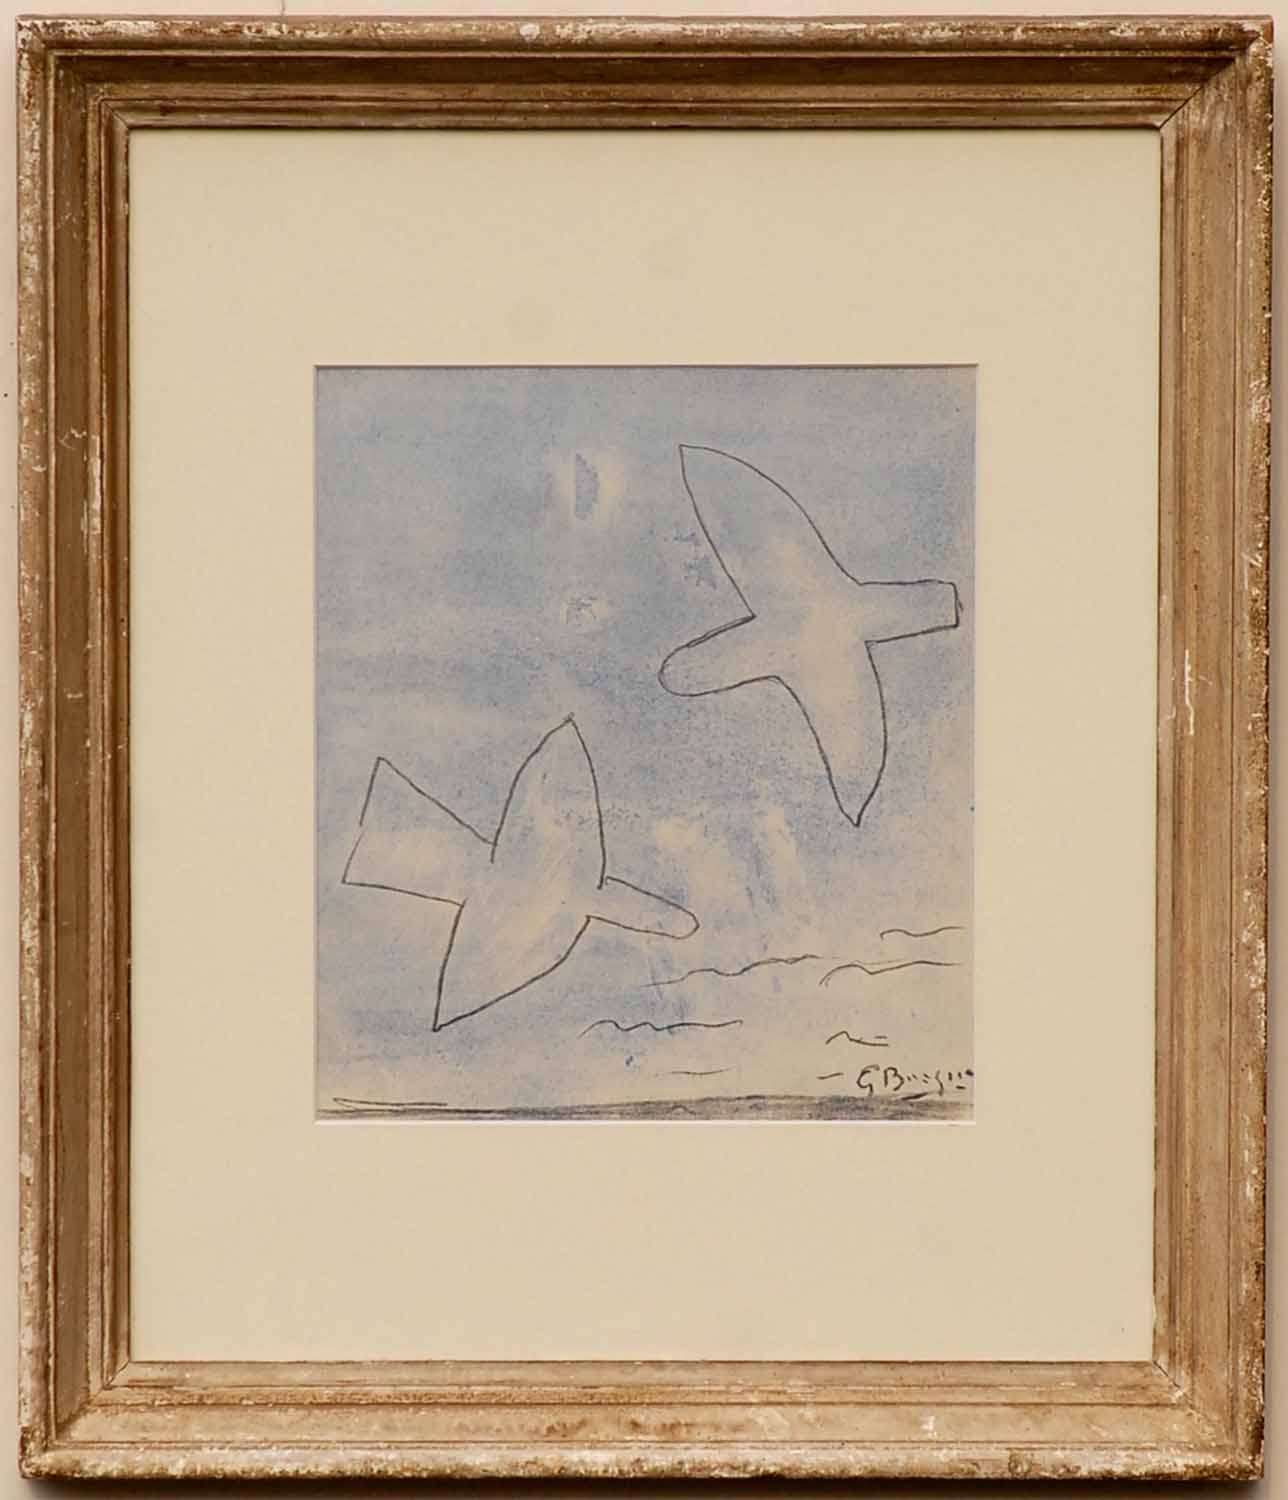 Lot 104 - GEORGES BRAQUE 'Two birds', 1958, pochoir, printed by Jacomet, 28cm x 24cm, framed and glazed.